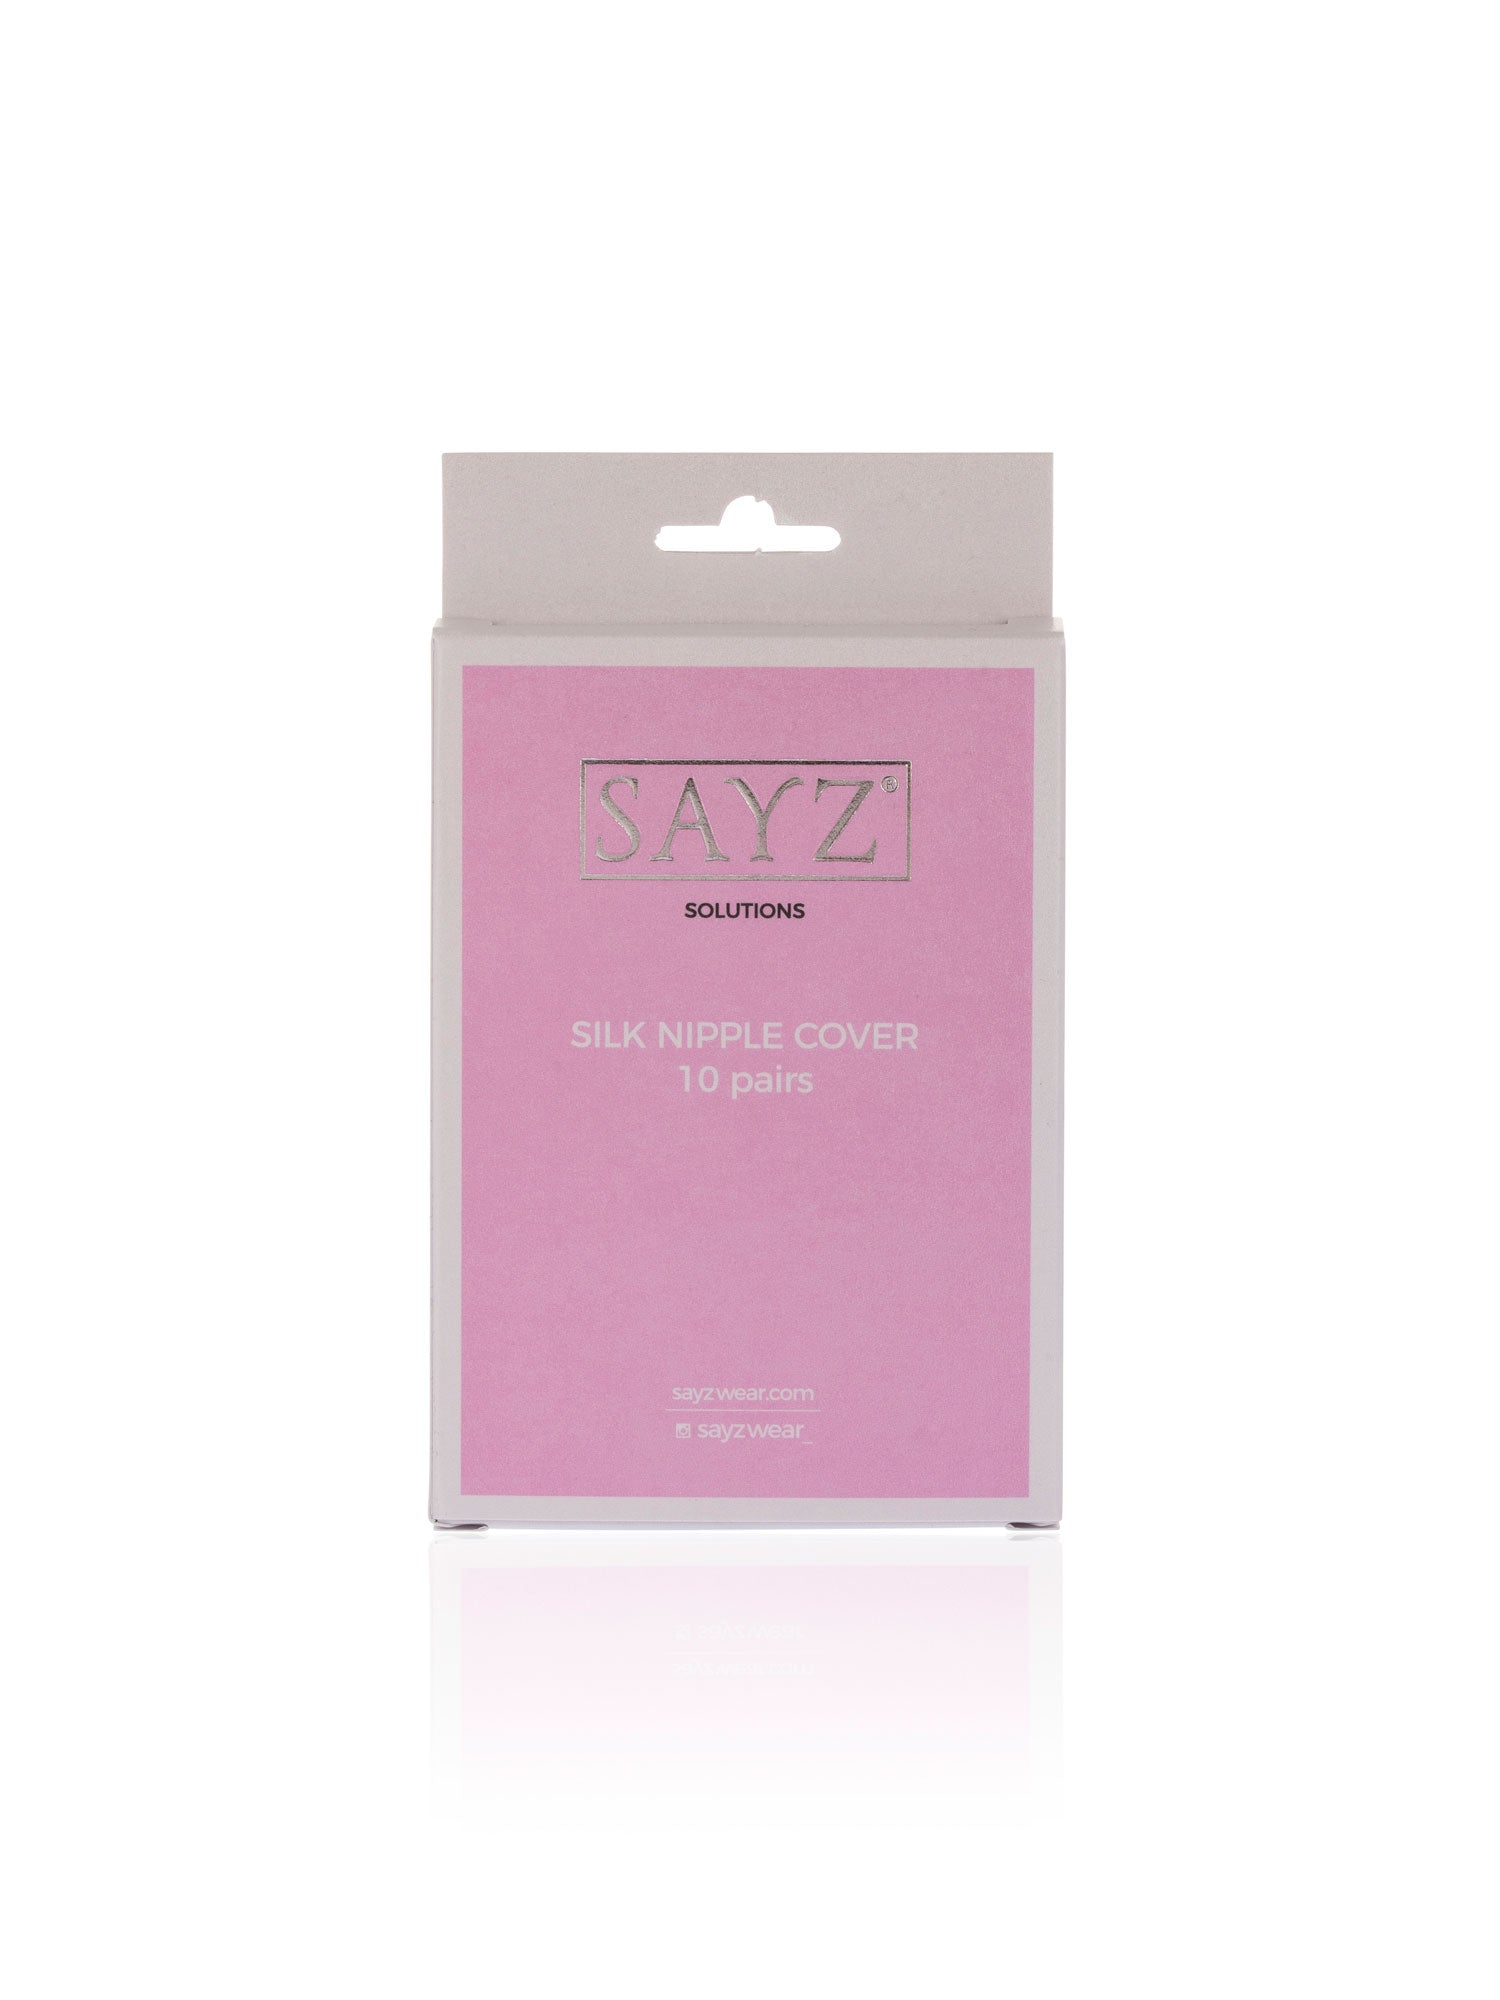 SAYZ SILK NIPPLE COVER